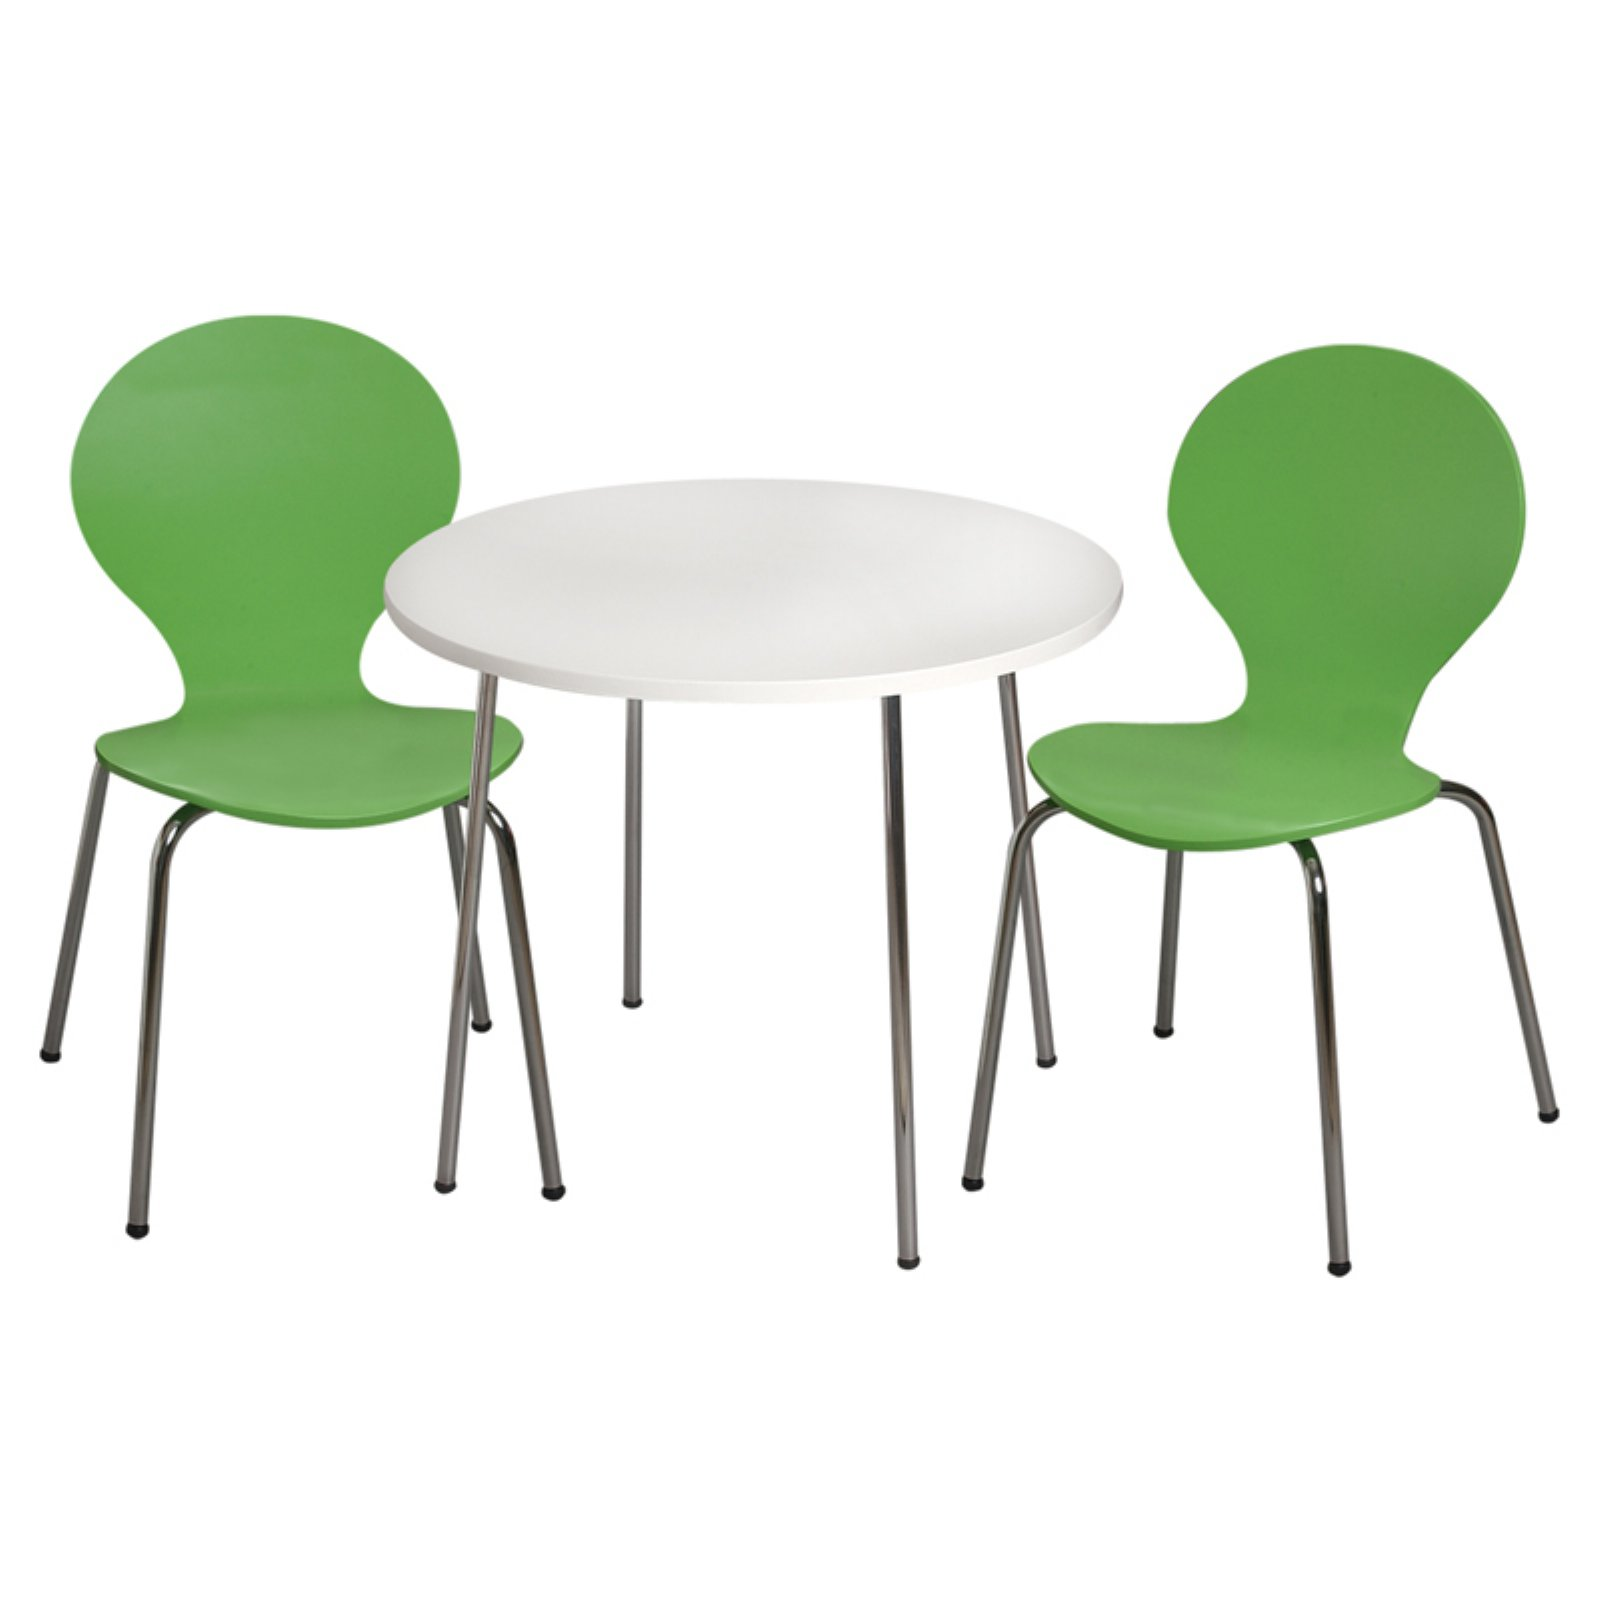 Modern Childrens Table And 2 Chair Set With Chrome Legs Green Kids Table And Chairs Kids Table Chair Set Table And Chairs